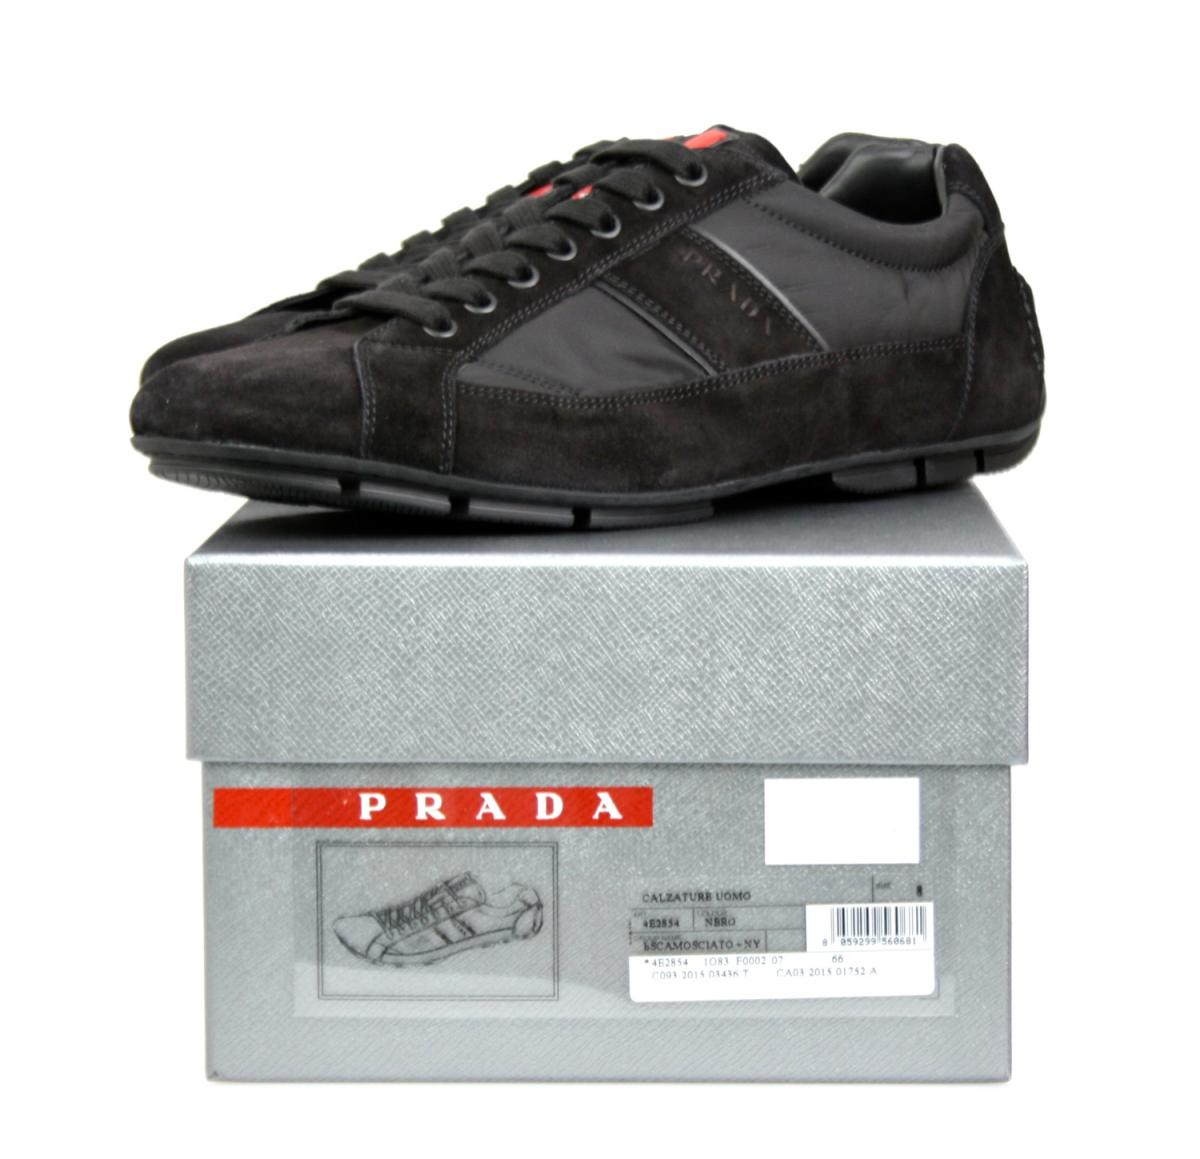 luxus prada monte carlo sneaker schuhe 4e2854 schwarz neu new 7 41 41 5 ebay. Black Bedroom Furniture Sets. Home Design Ideas